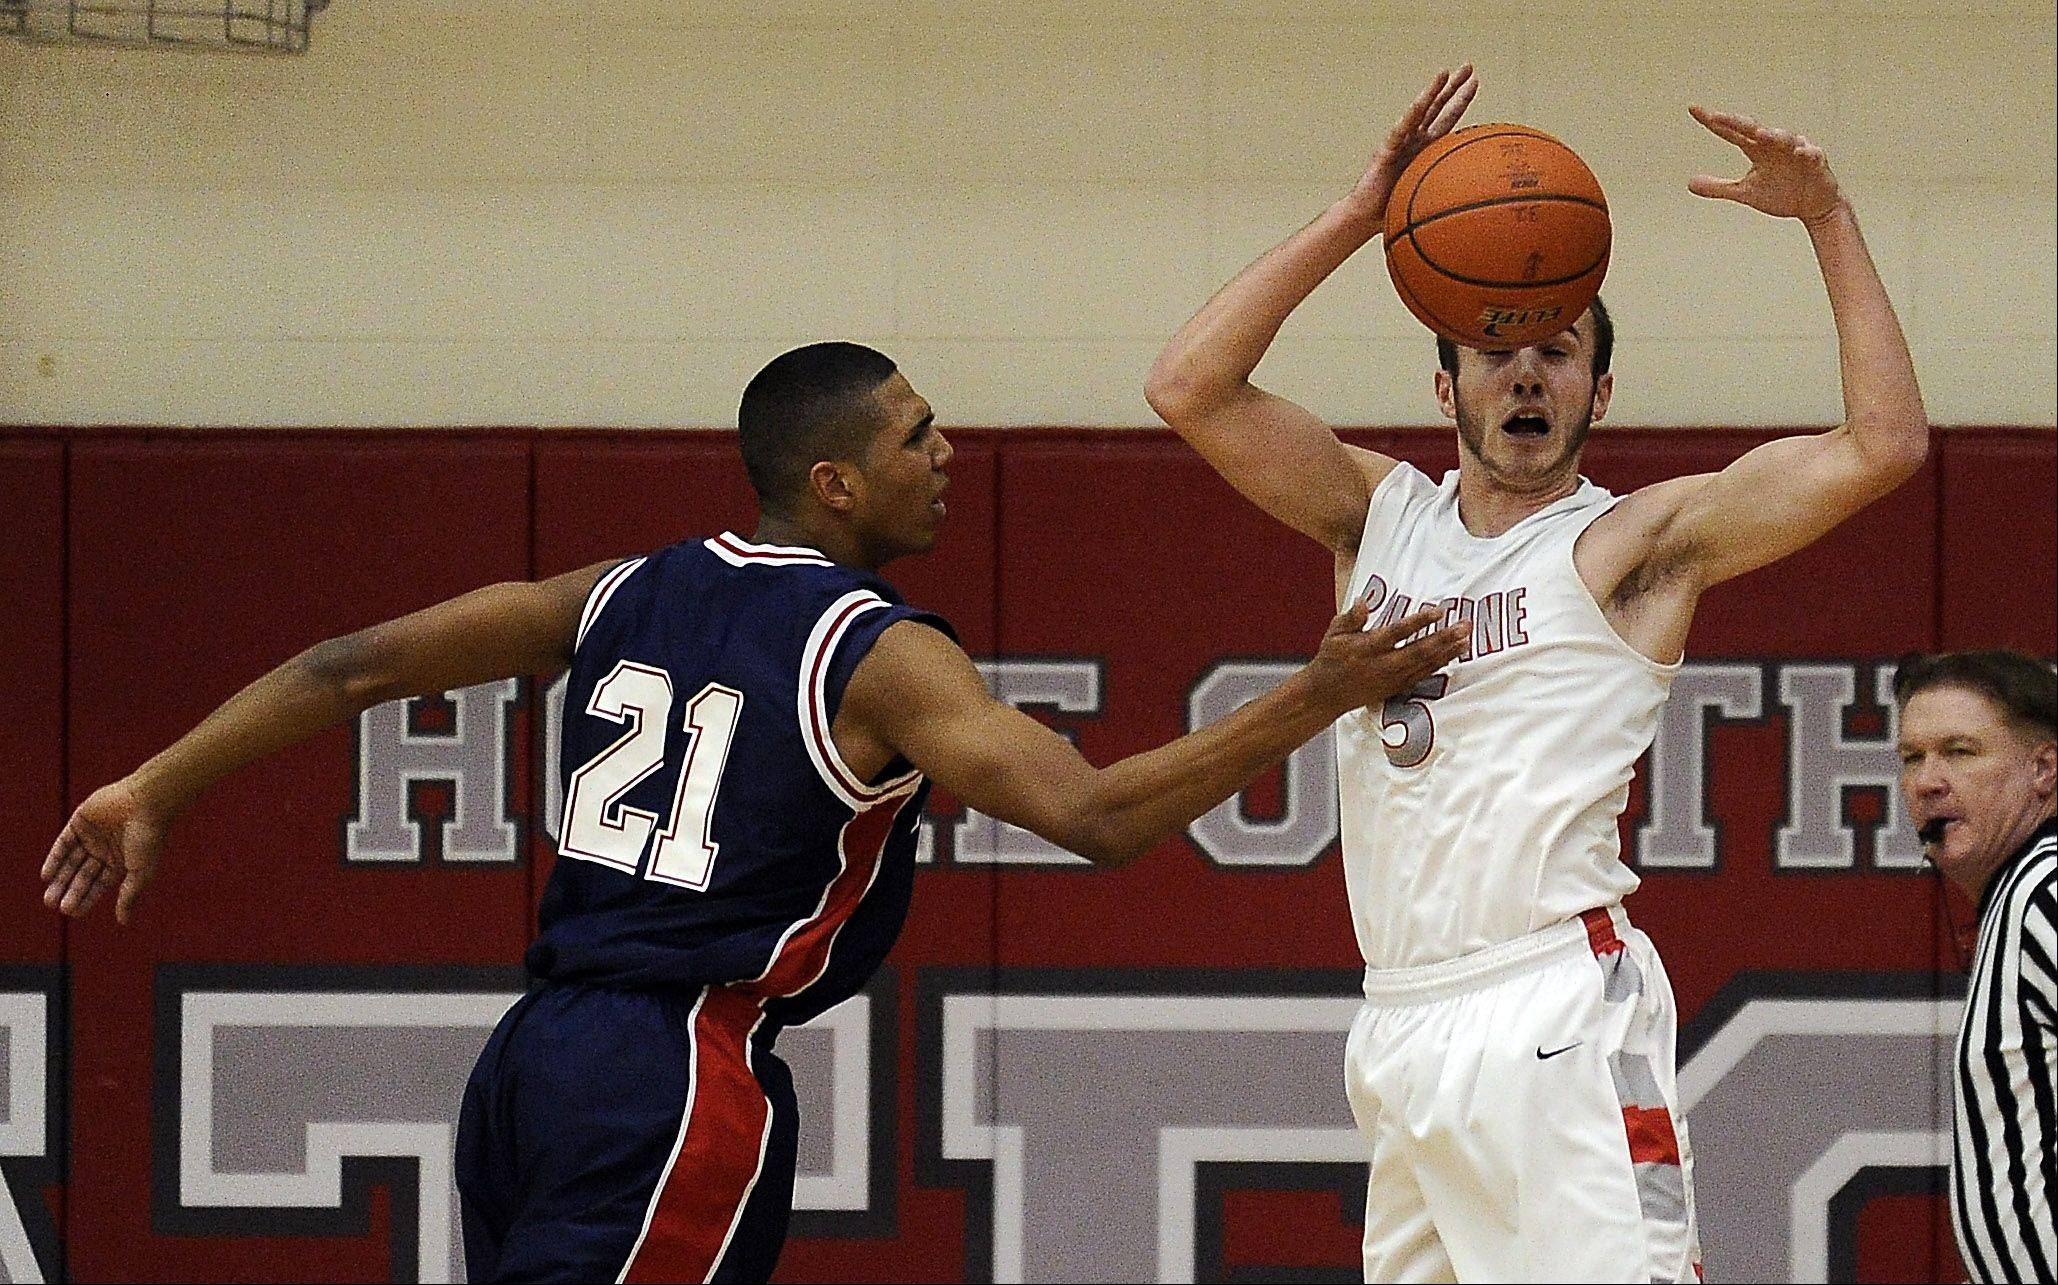 Palatine�s Chris Macahon tries to control the ball and keep it away from Conant�s D�Angelo McBride in the first half.